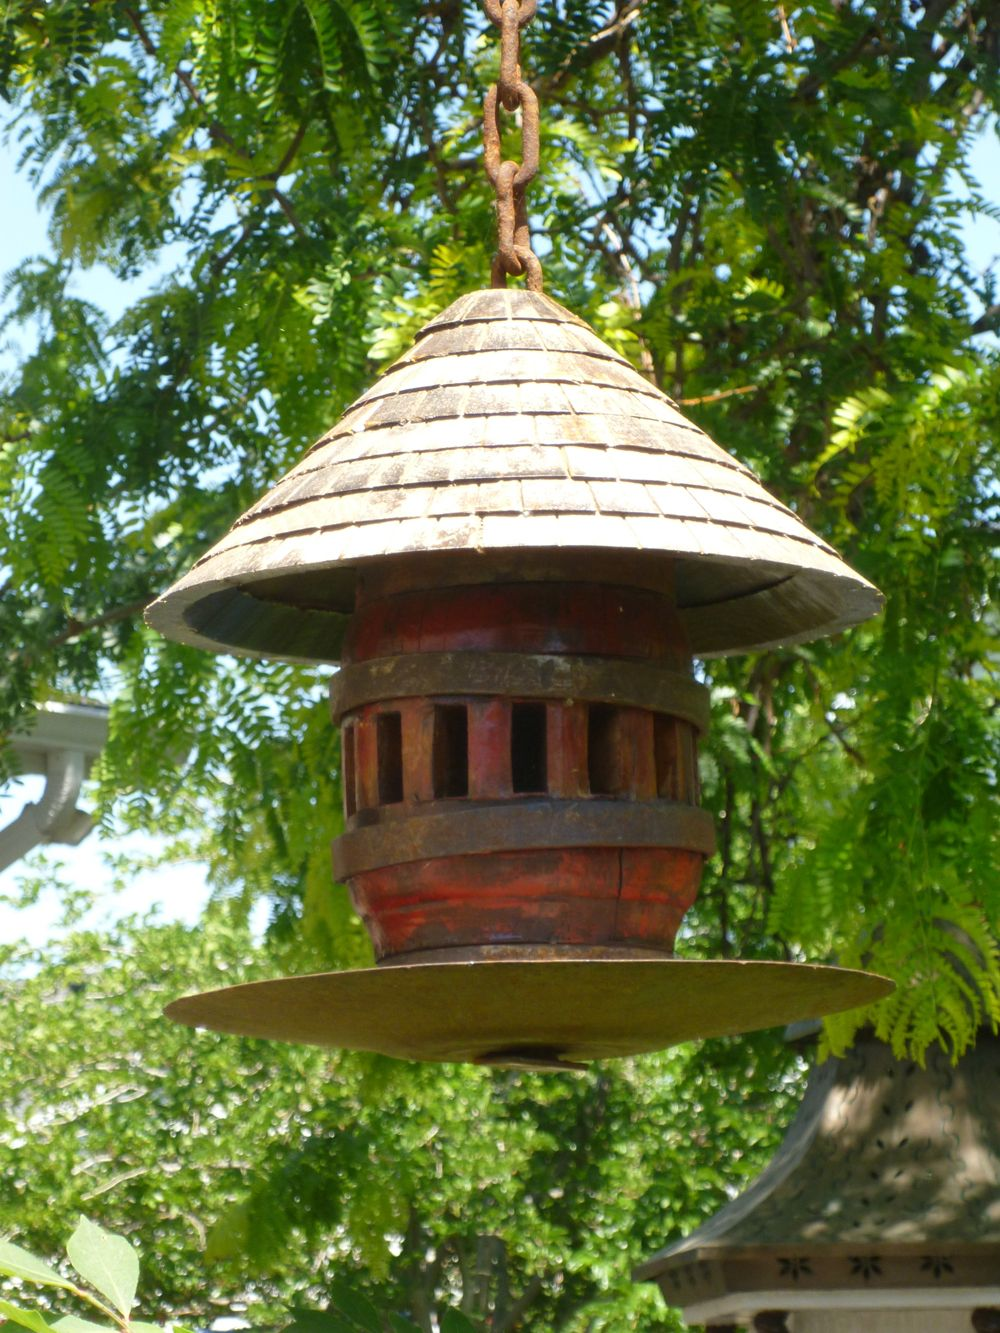 Large Rustic Bird Houses Birdhouse Made From Wagon Wheel